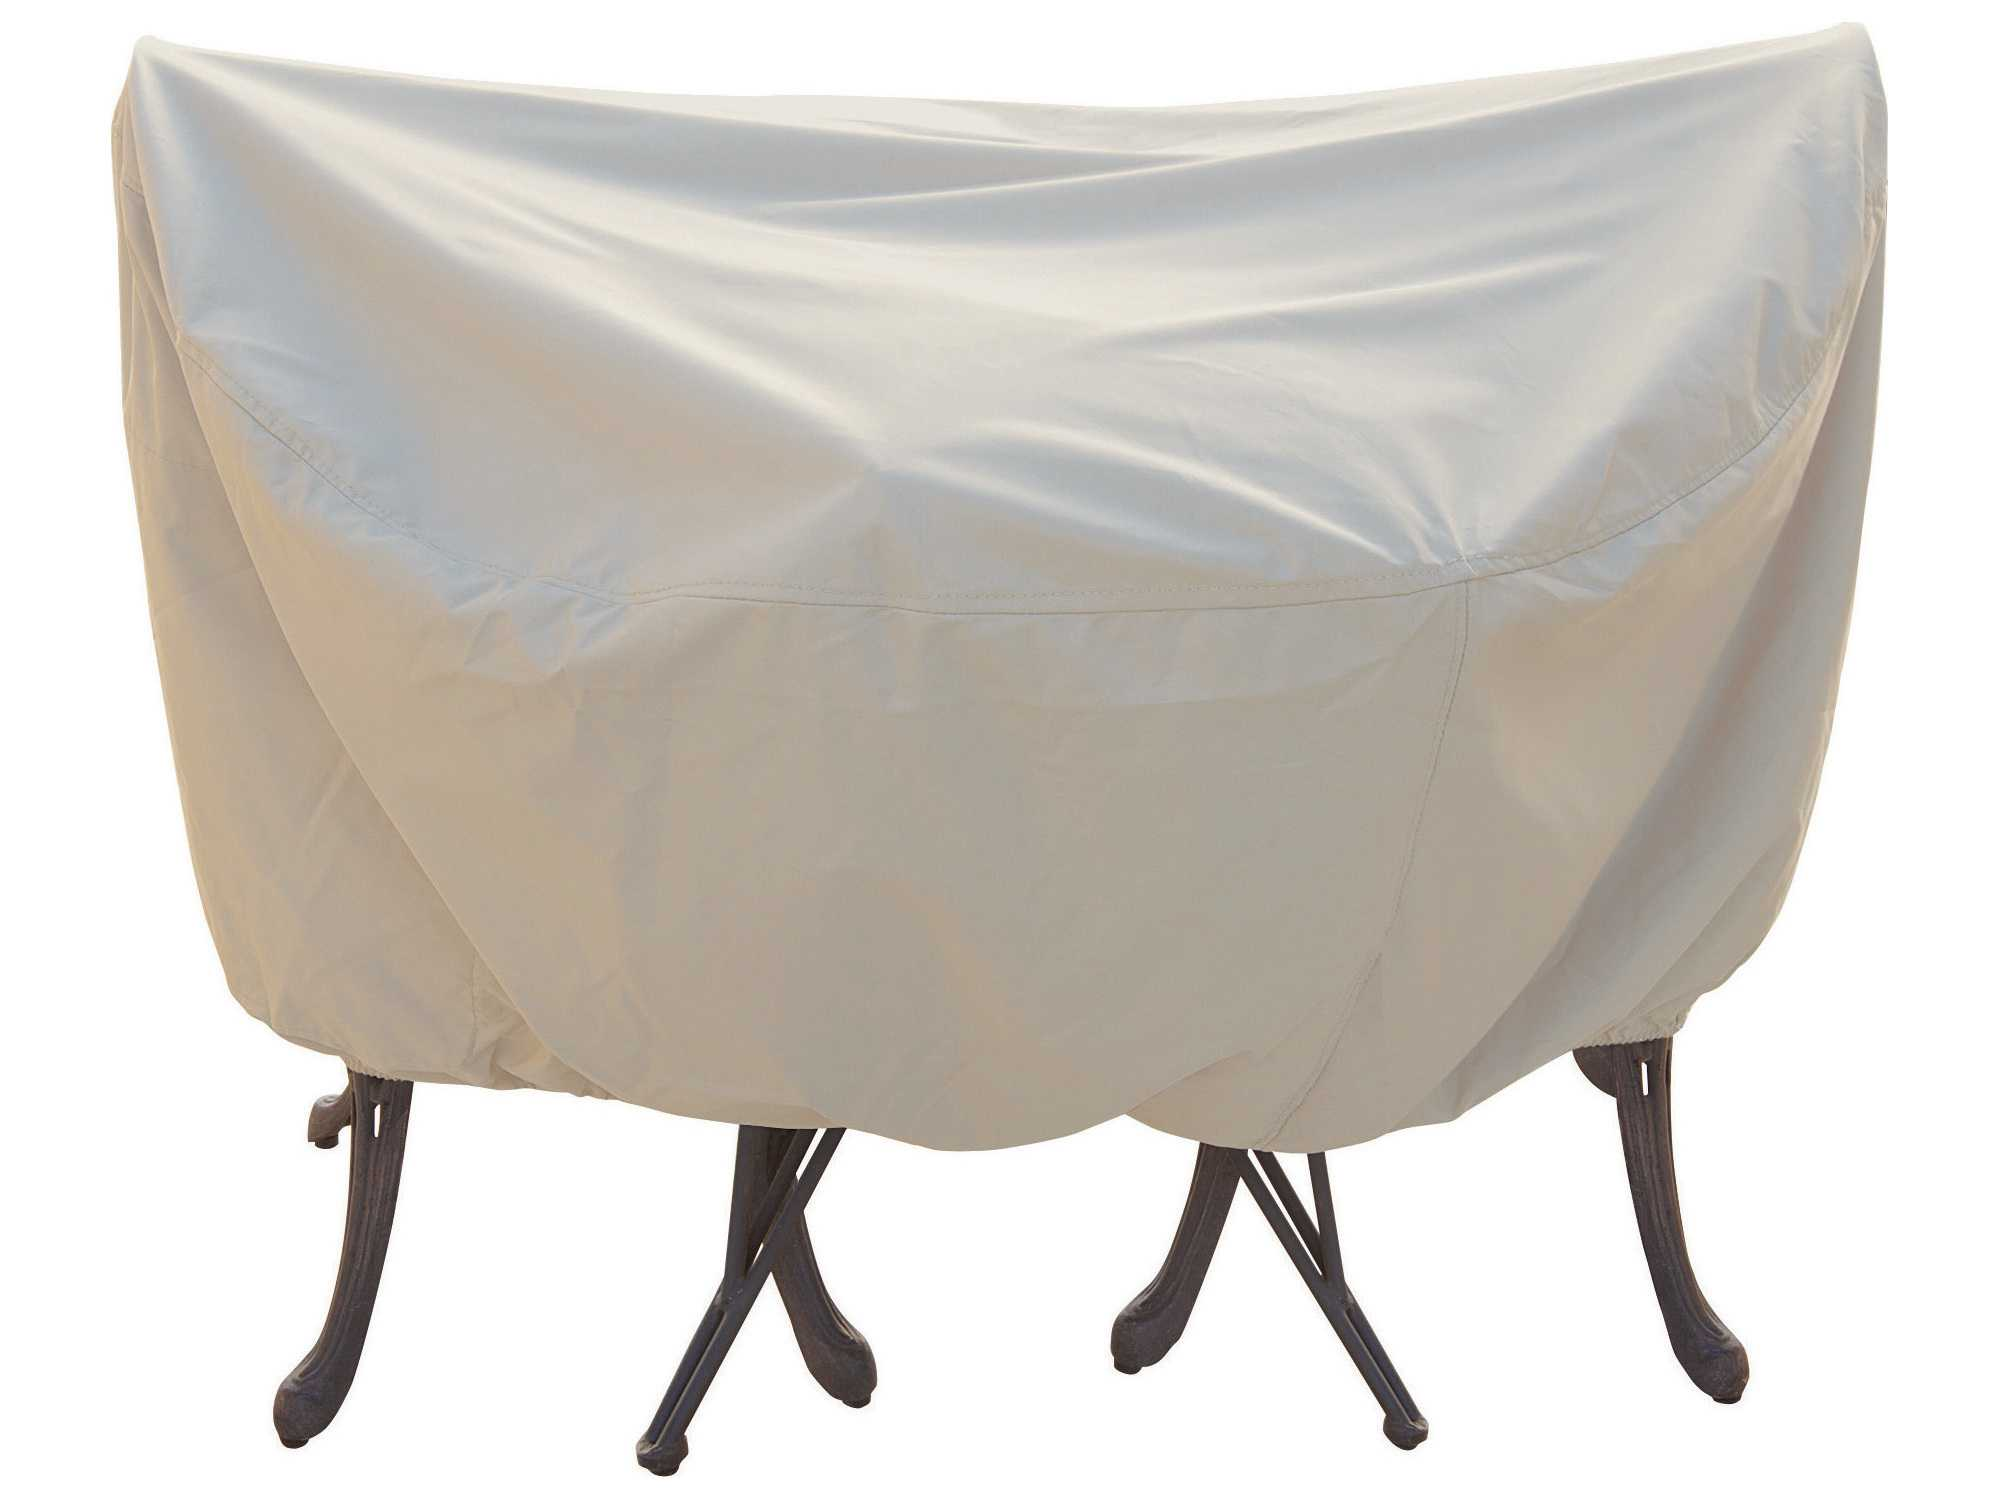 Treasure Garden 36 Bistro Café Table & Chairs Cover with Umbrella Hole